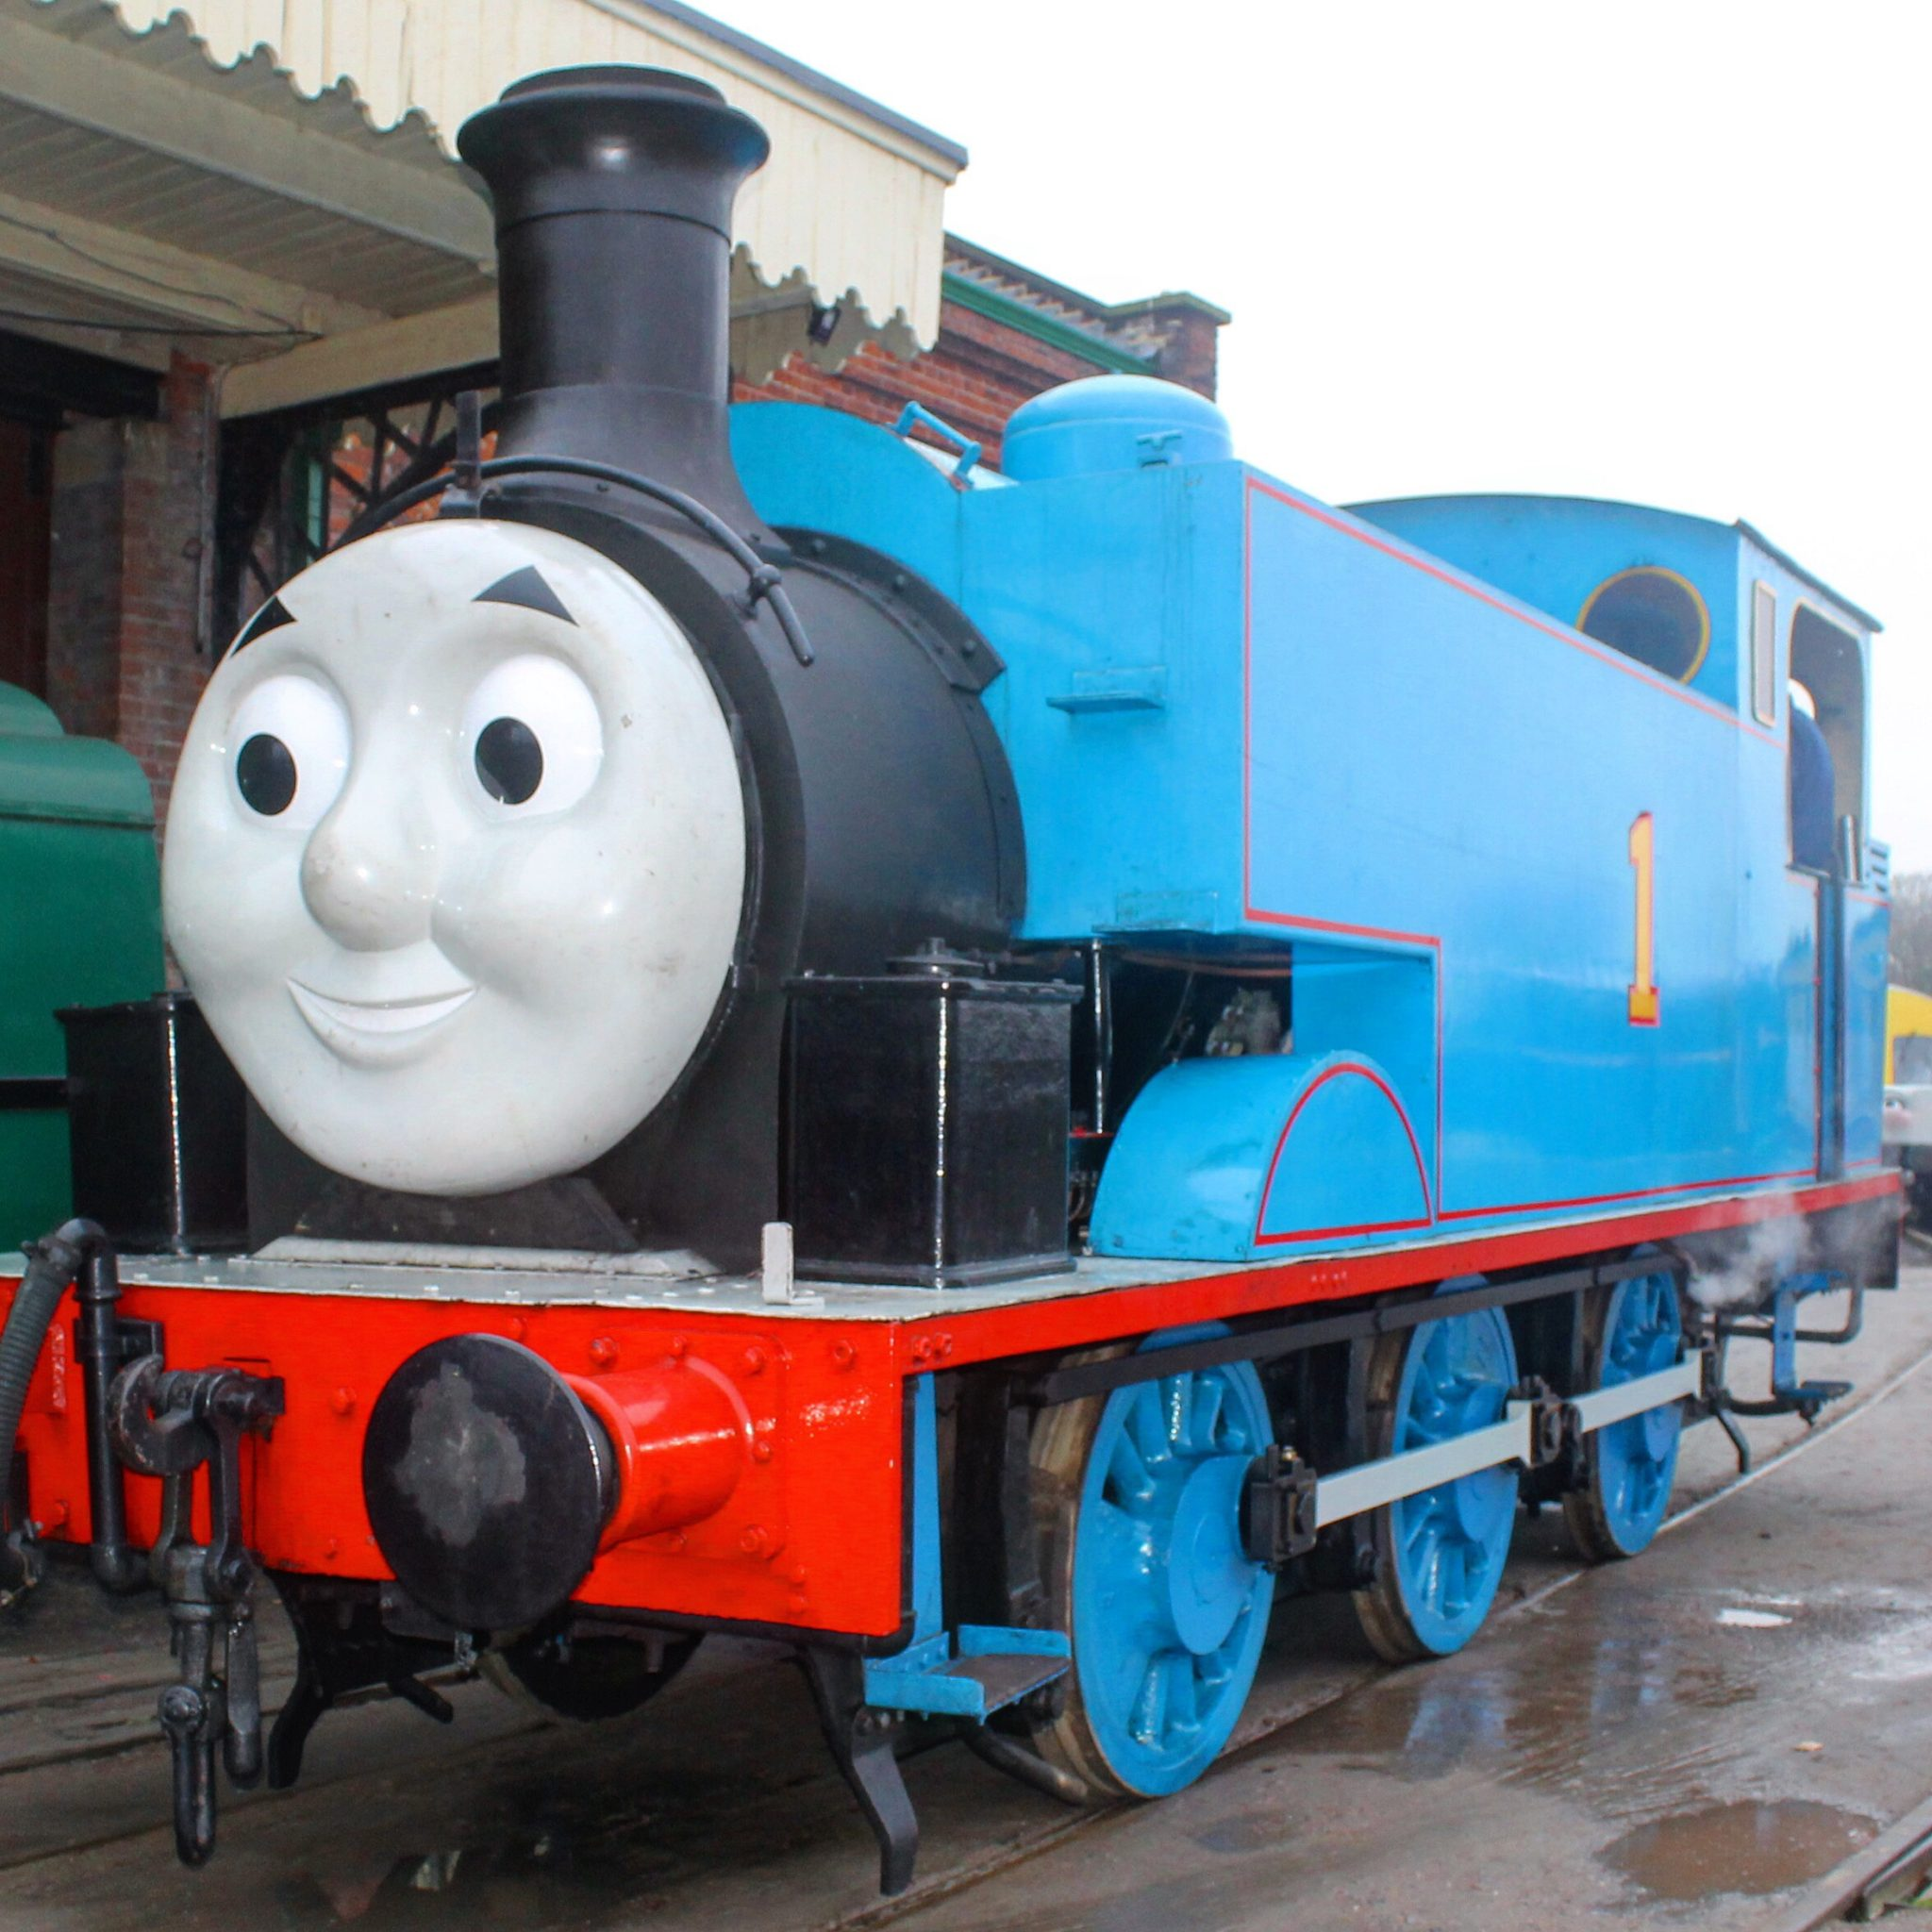 A Day out with Thomas at East Anglian Railway